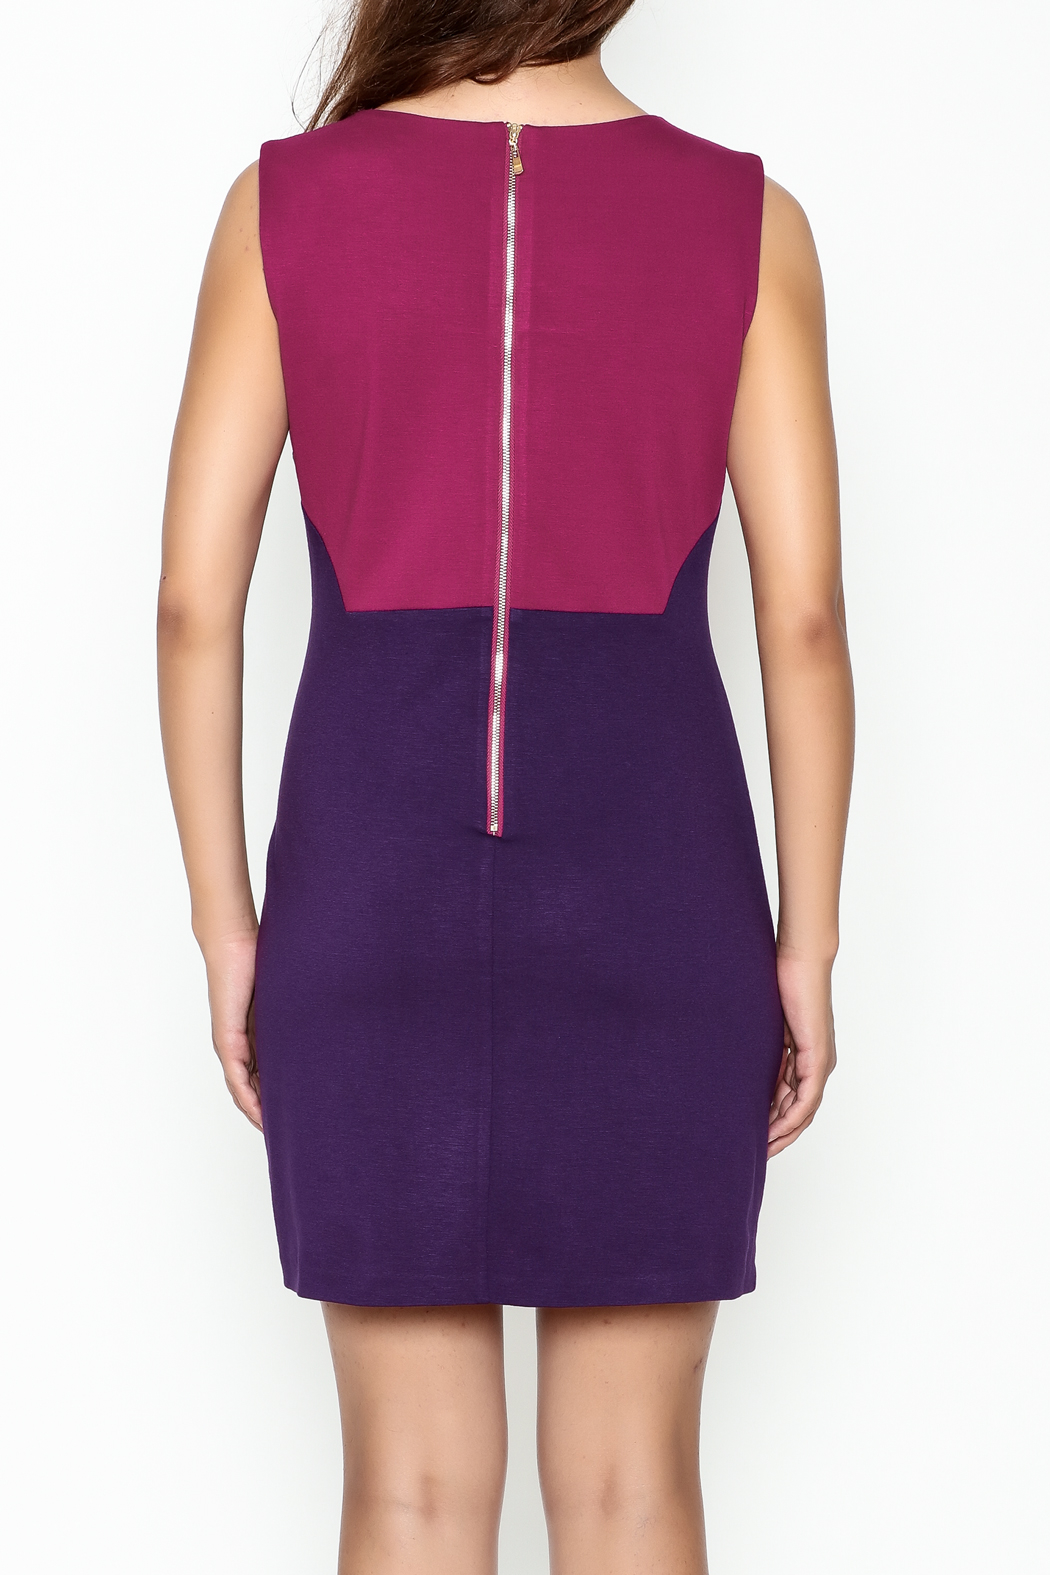 Jade Ponte Knit Dress - Back Cropped Image